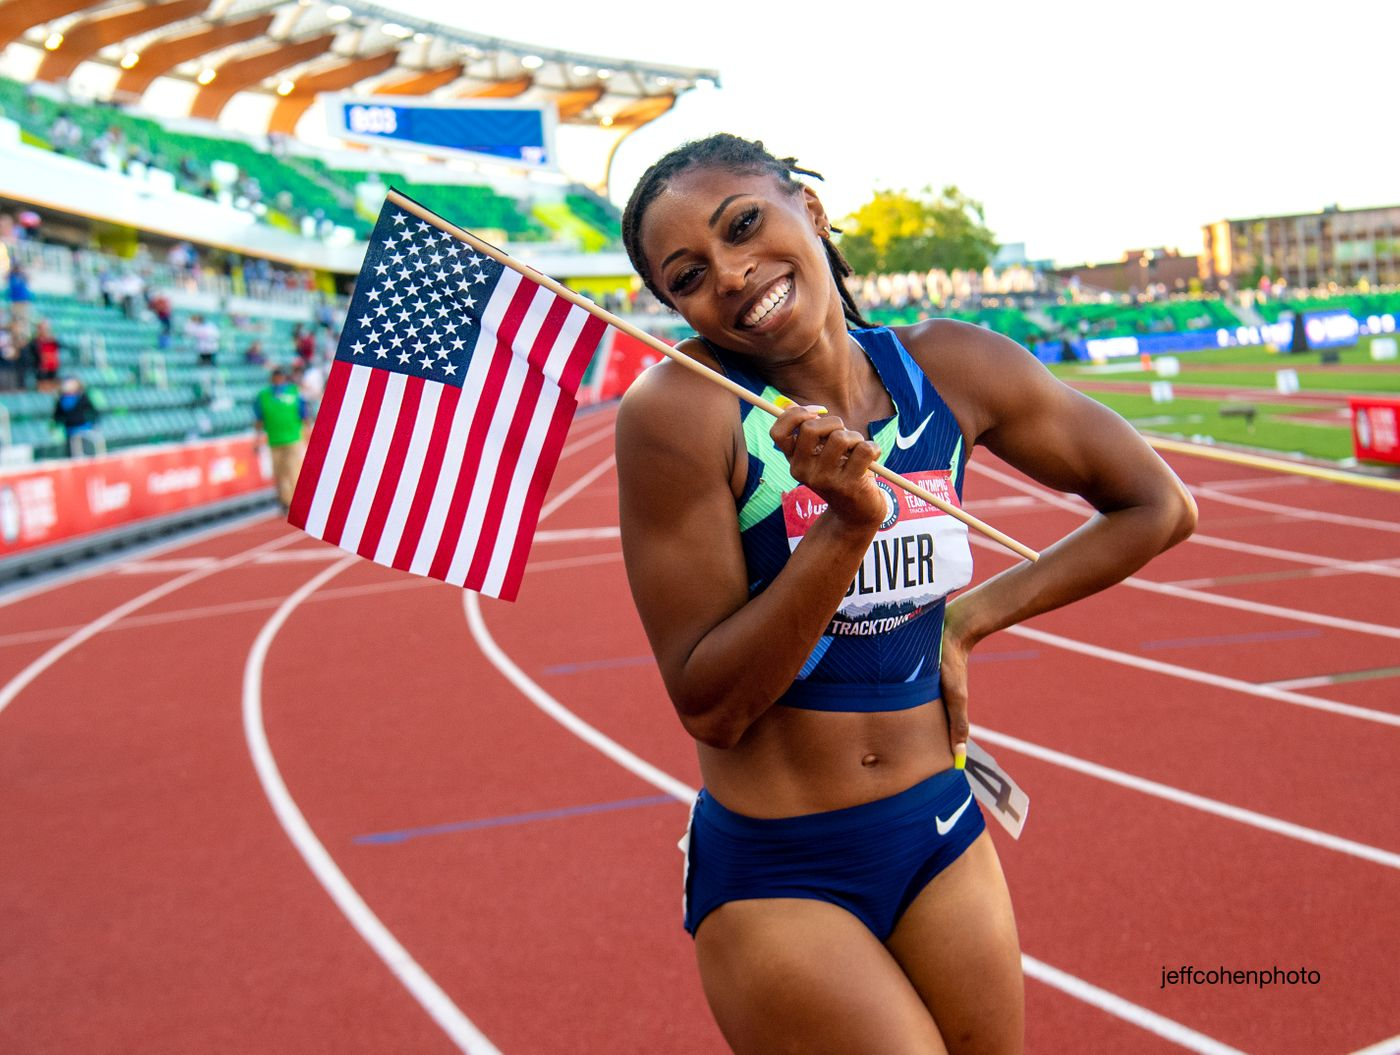 oliver-100w-2021-US-Oly-Trials-day-2-3387-jeff-cohen-photo--web.jpg